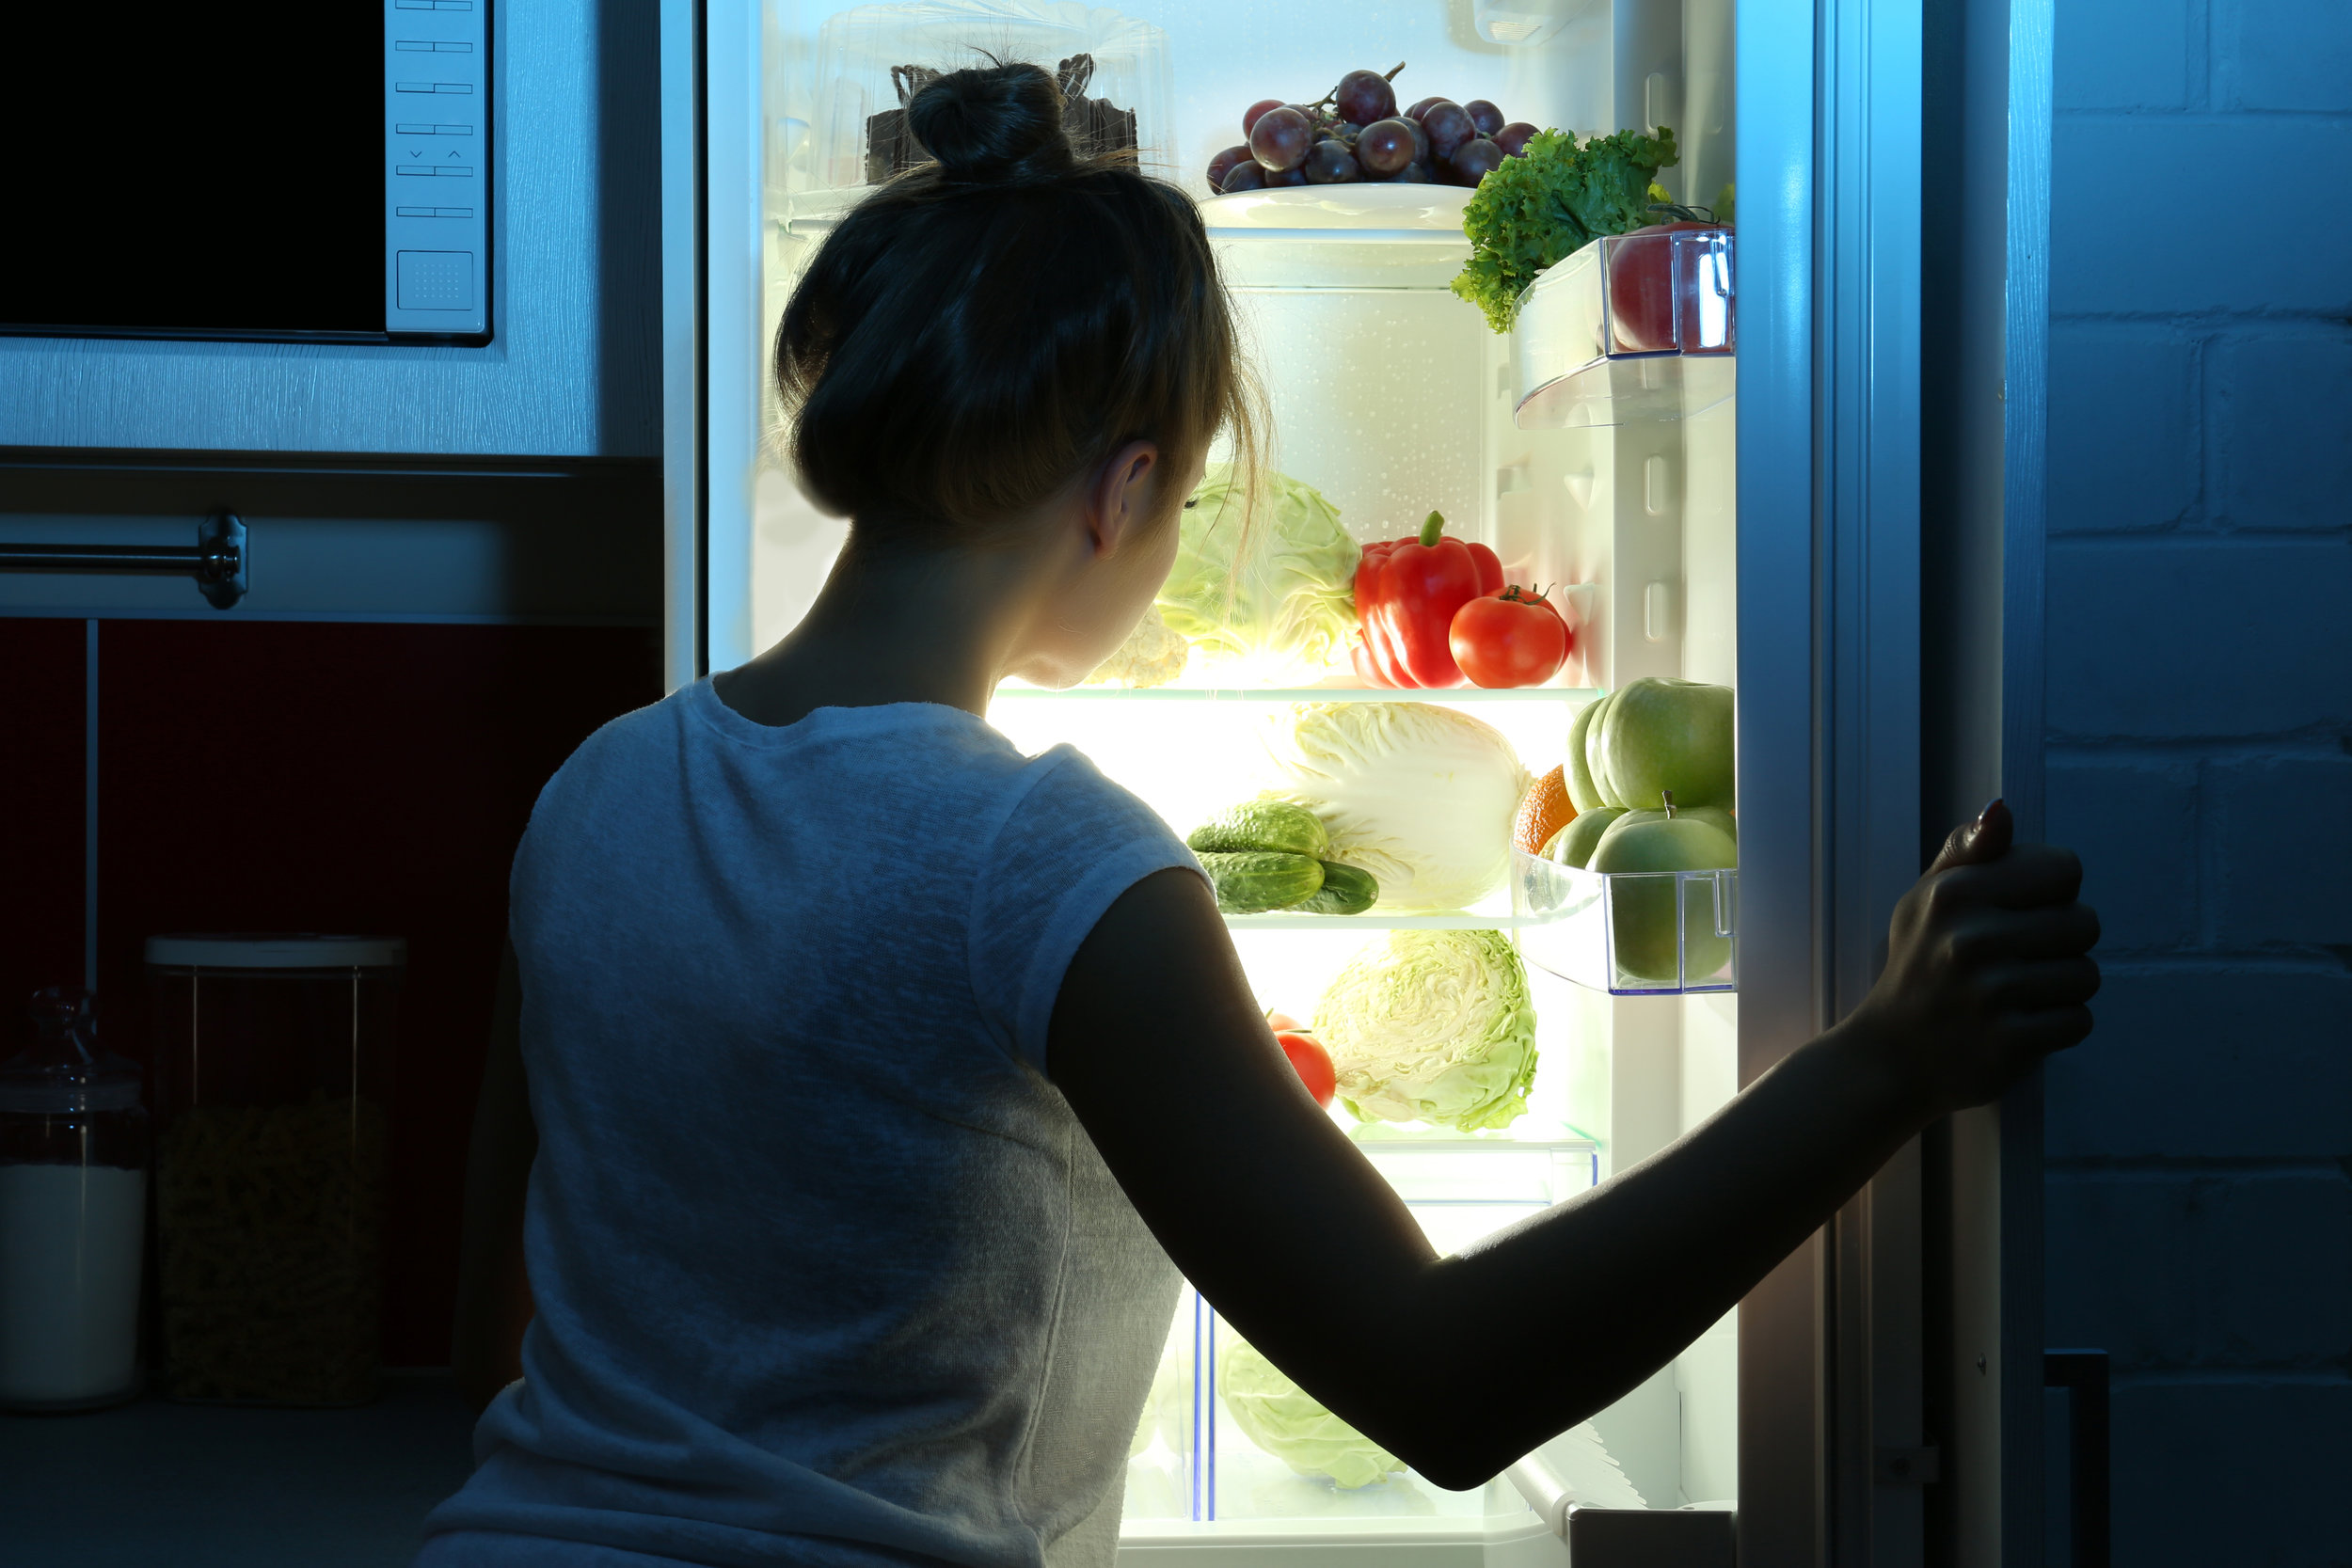 Eating late at night has been found to disrupt normal circadian rhythms, and is associated with insulin resistance and weight gain.